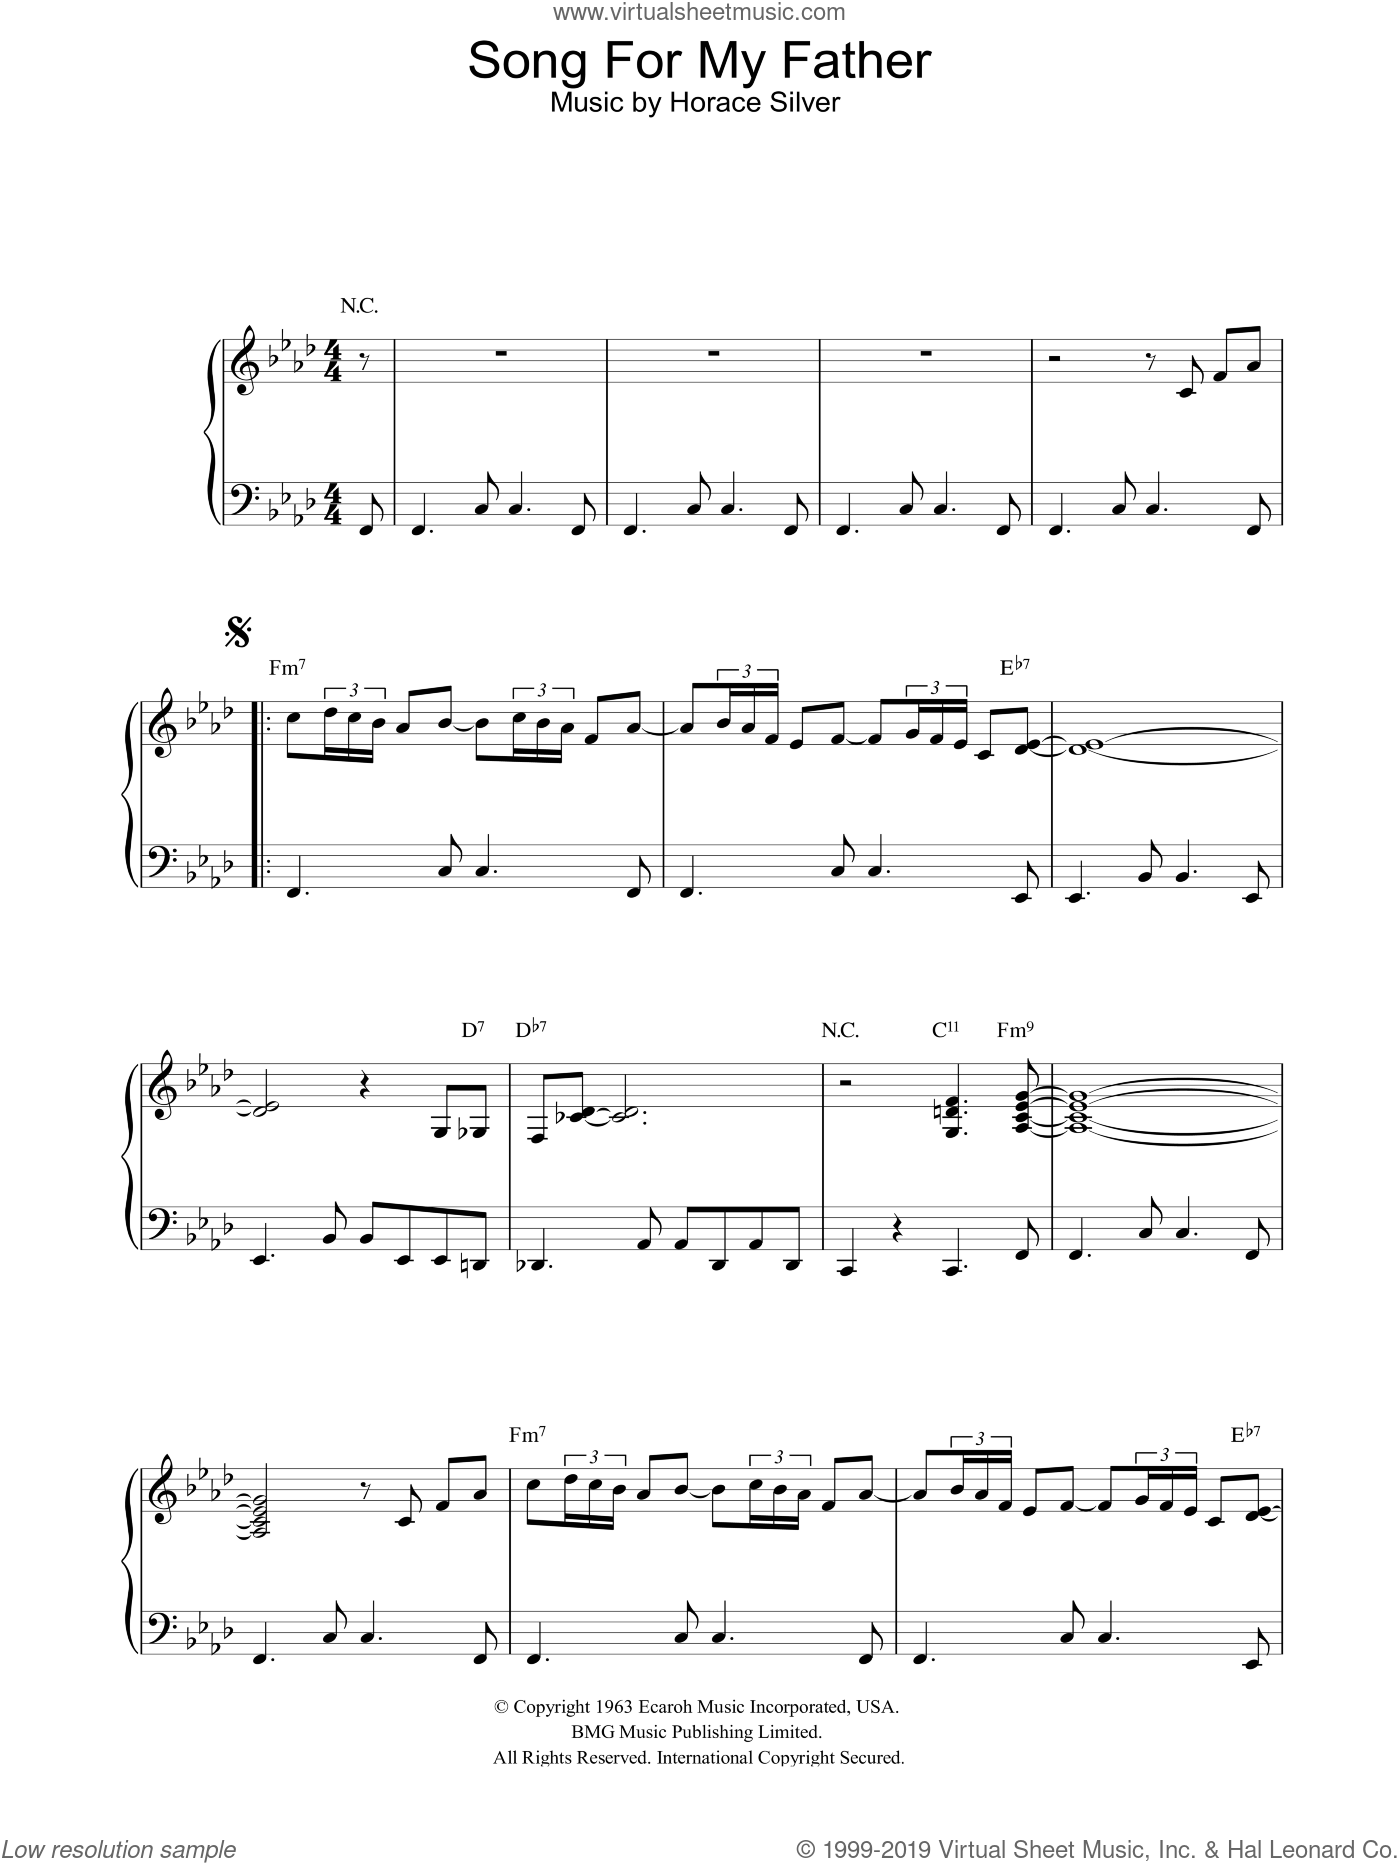 Song For My Father sheet music for piano solo by Horace Silver, intermediate skill level